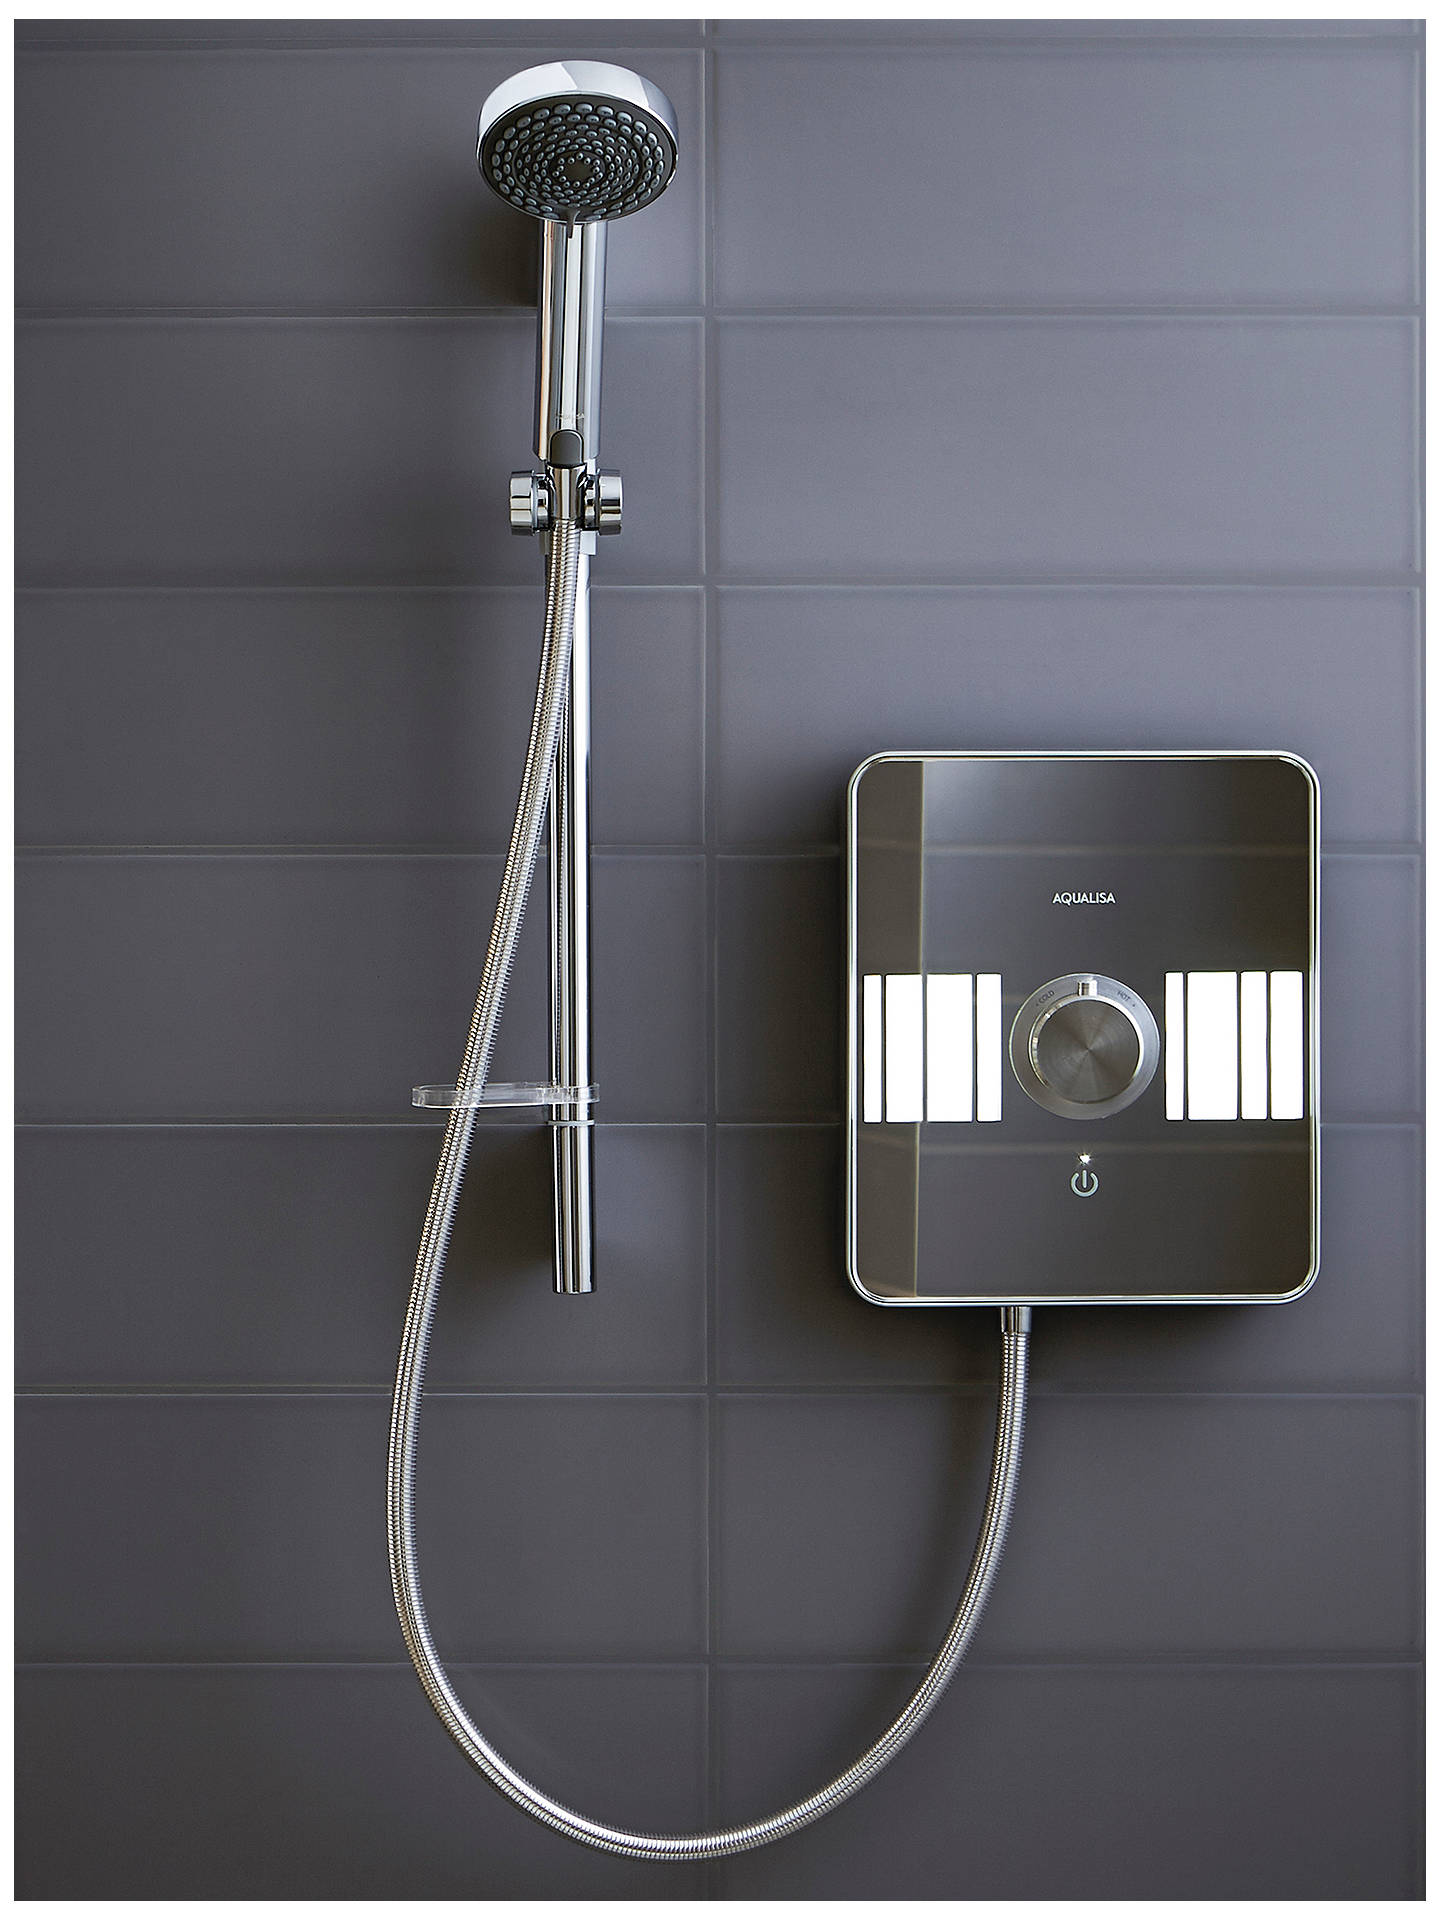 BuyAqualisa Lumi XT 9.5kW Electric Shower with Adjustable Head, Chrome Online at johnlewis.com